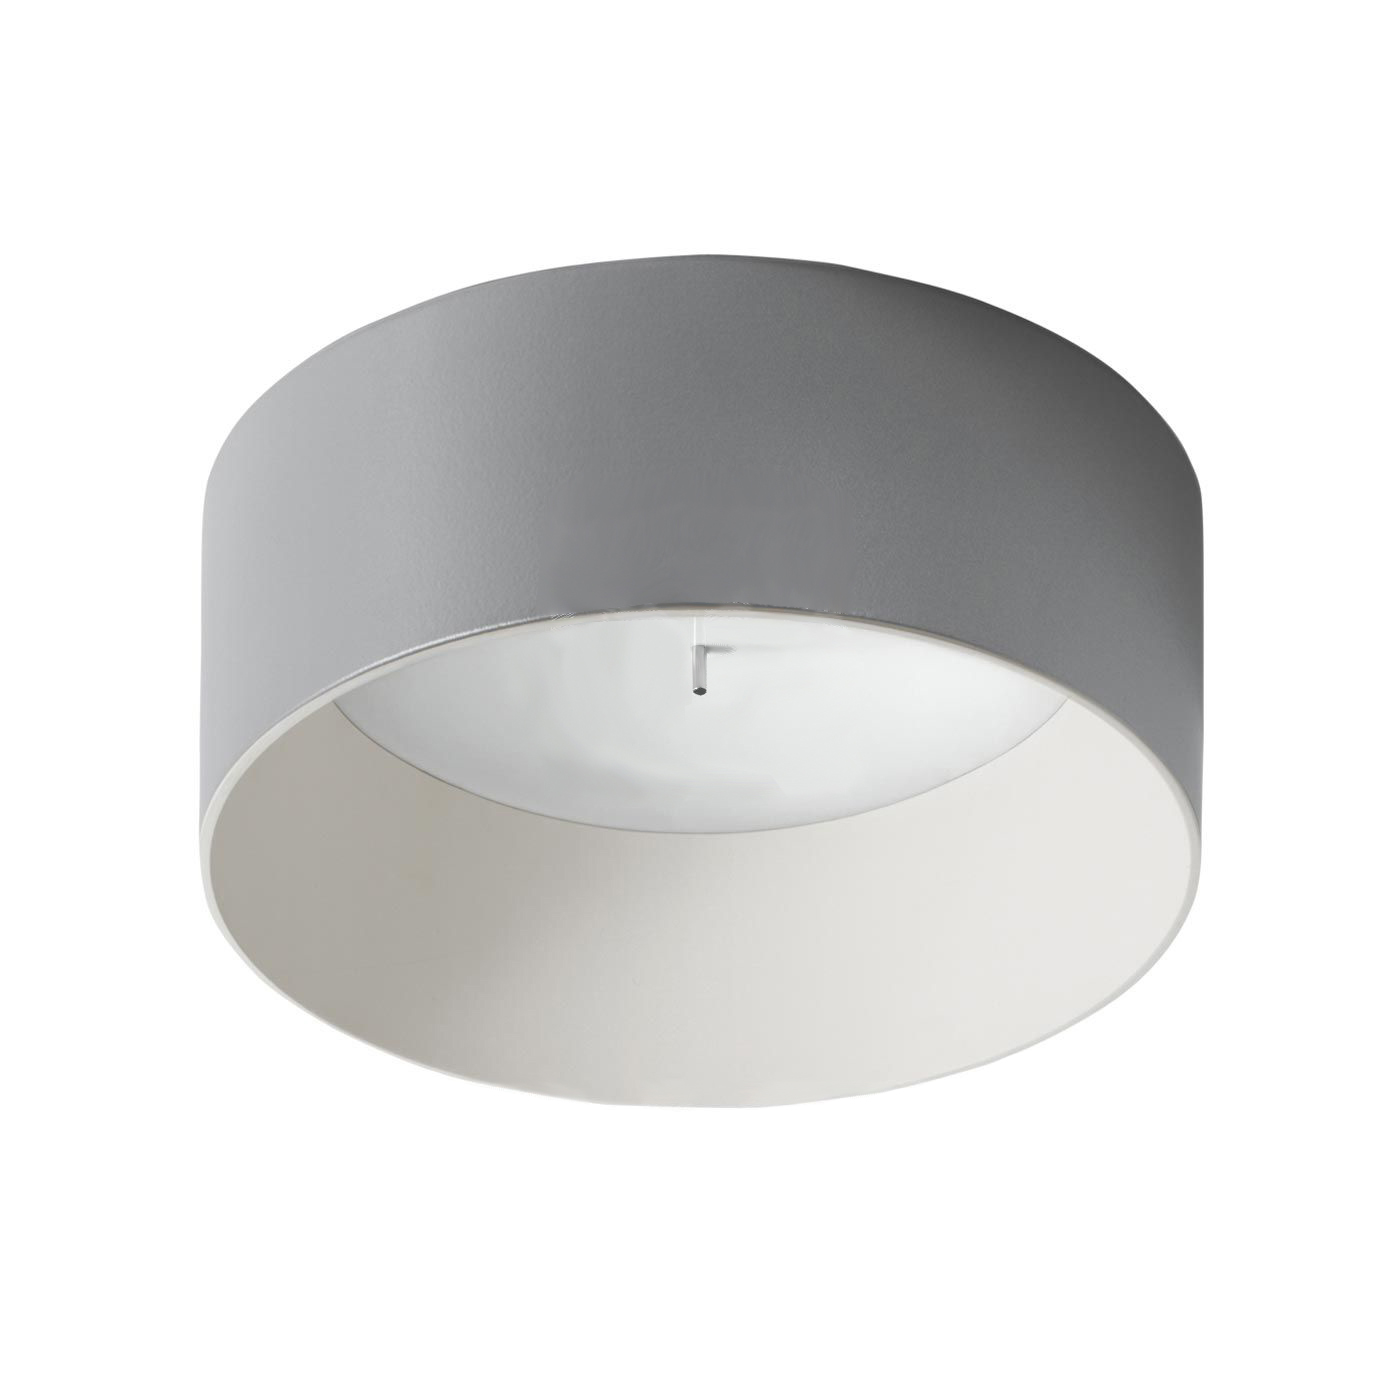 Www.twenga.de Artemide Lamp Tagora Ceiling 570 Light Beam Xf Grey White 4000k Dimmable Aluminum